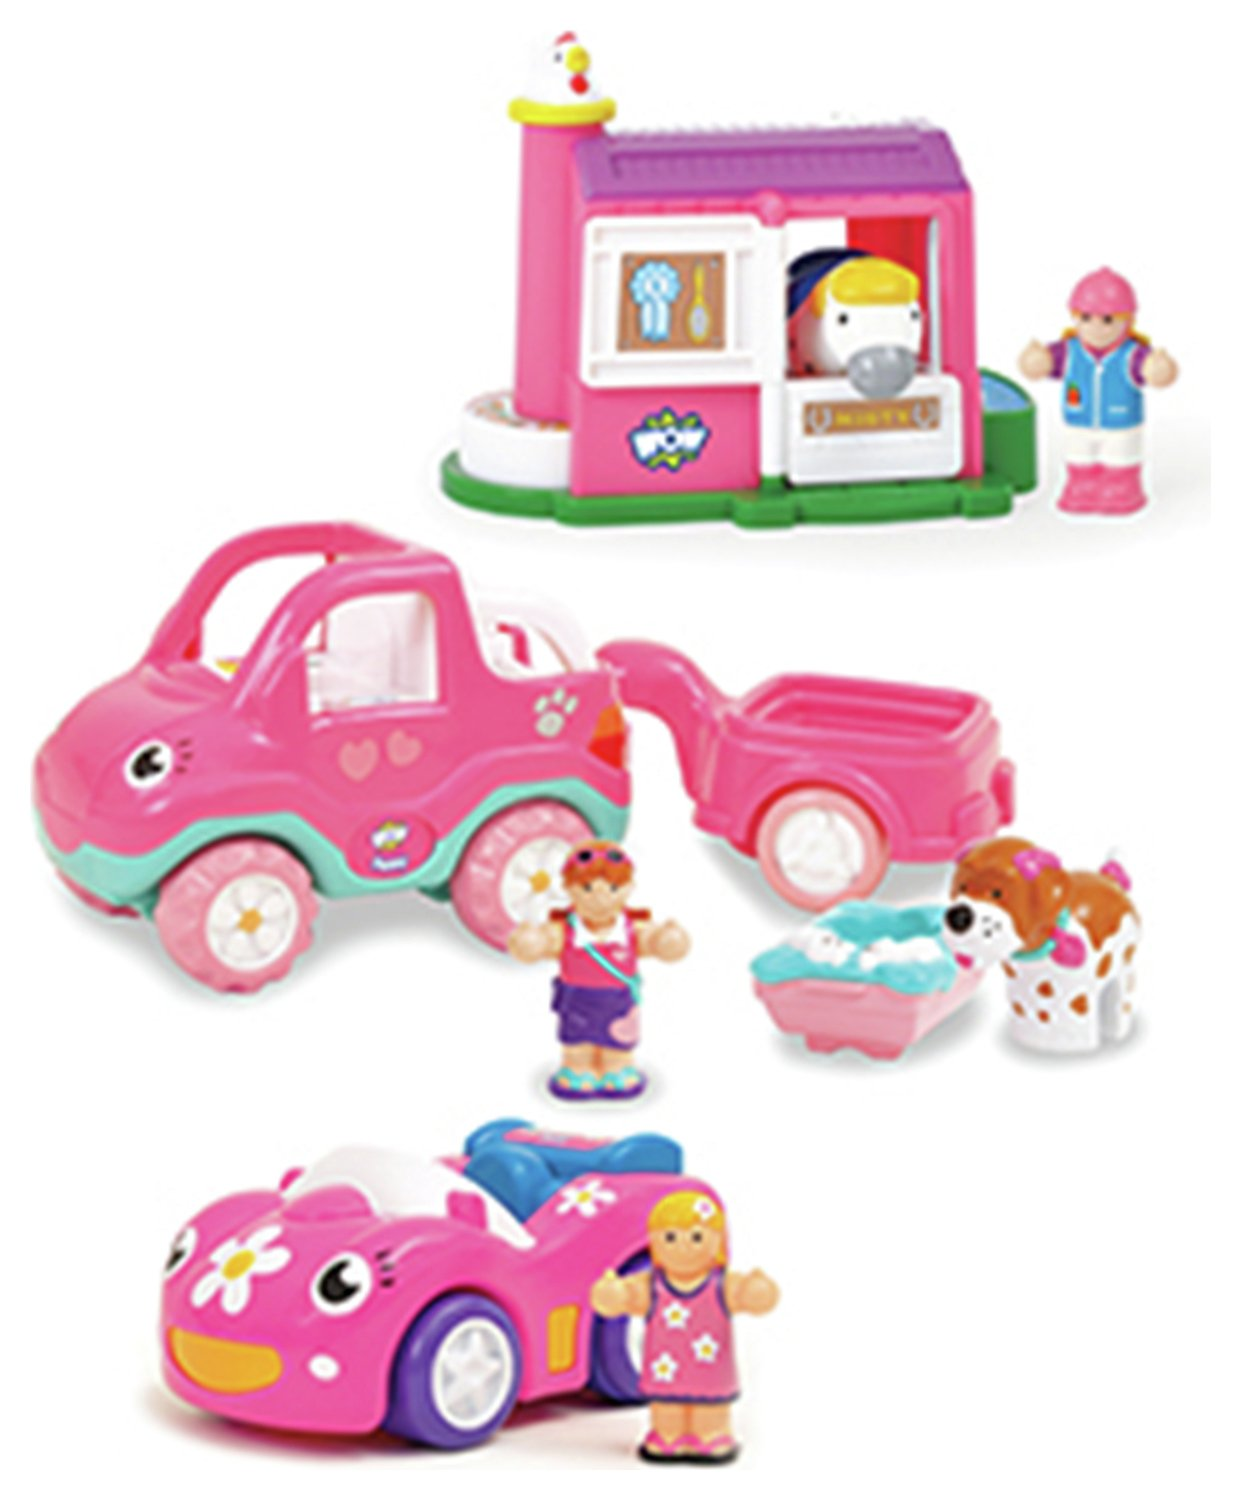 WOW Toys Girls' Day Out 3 in 1 Multipack.